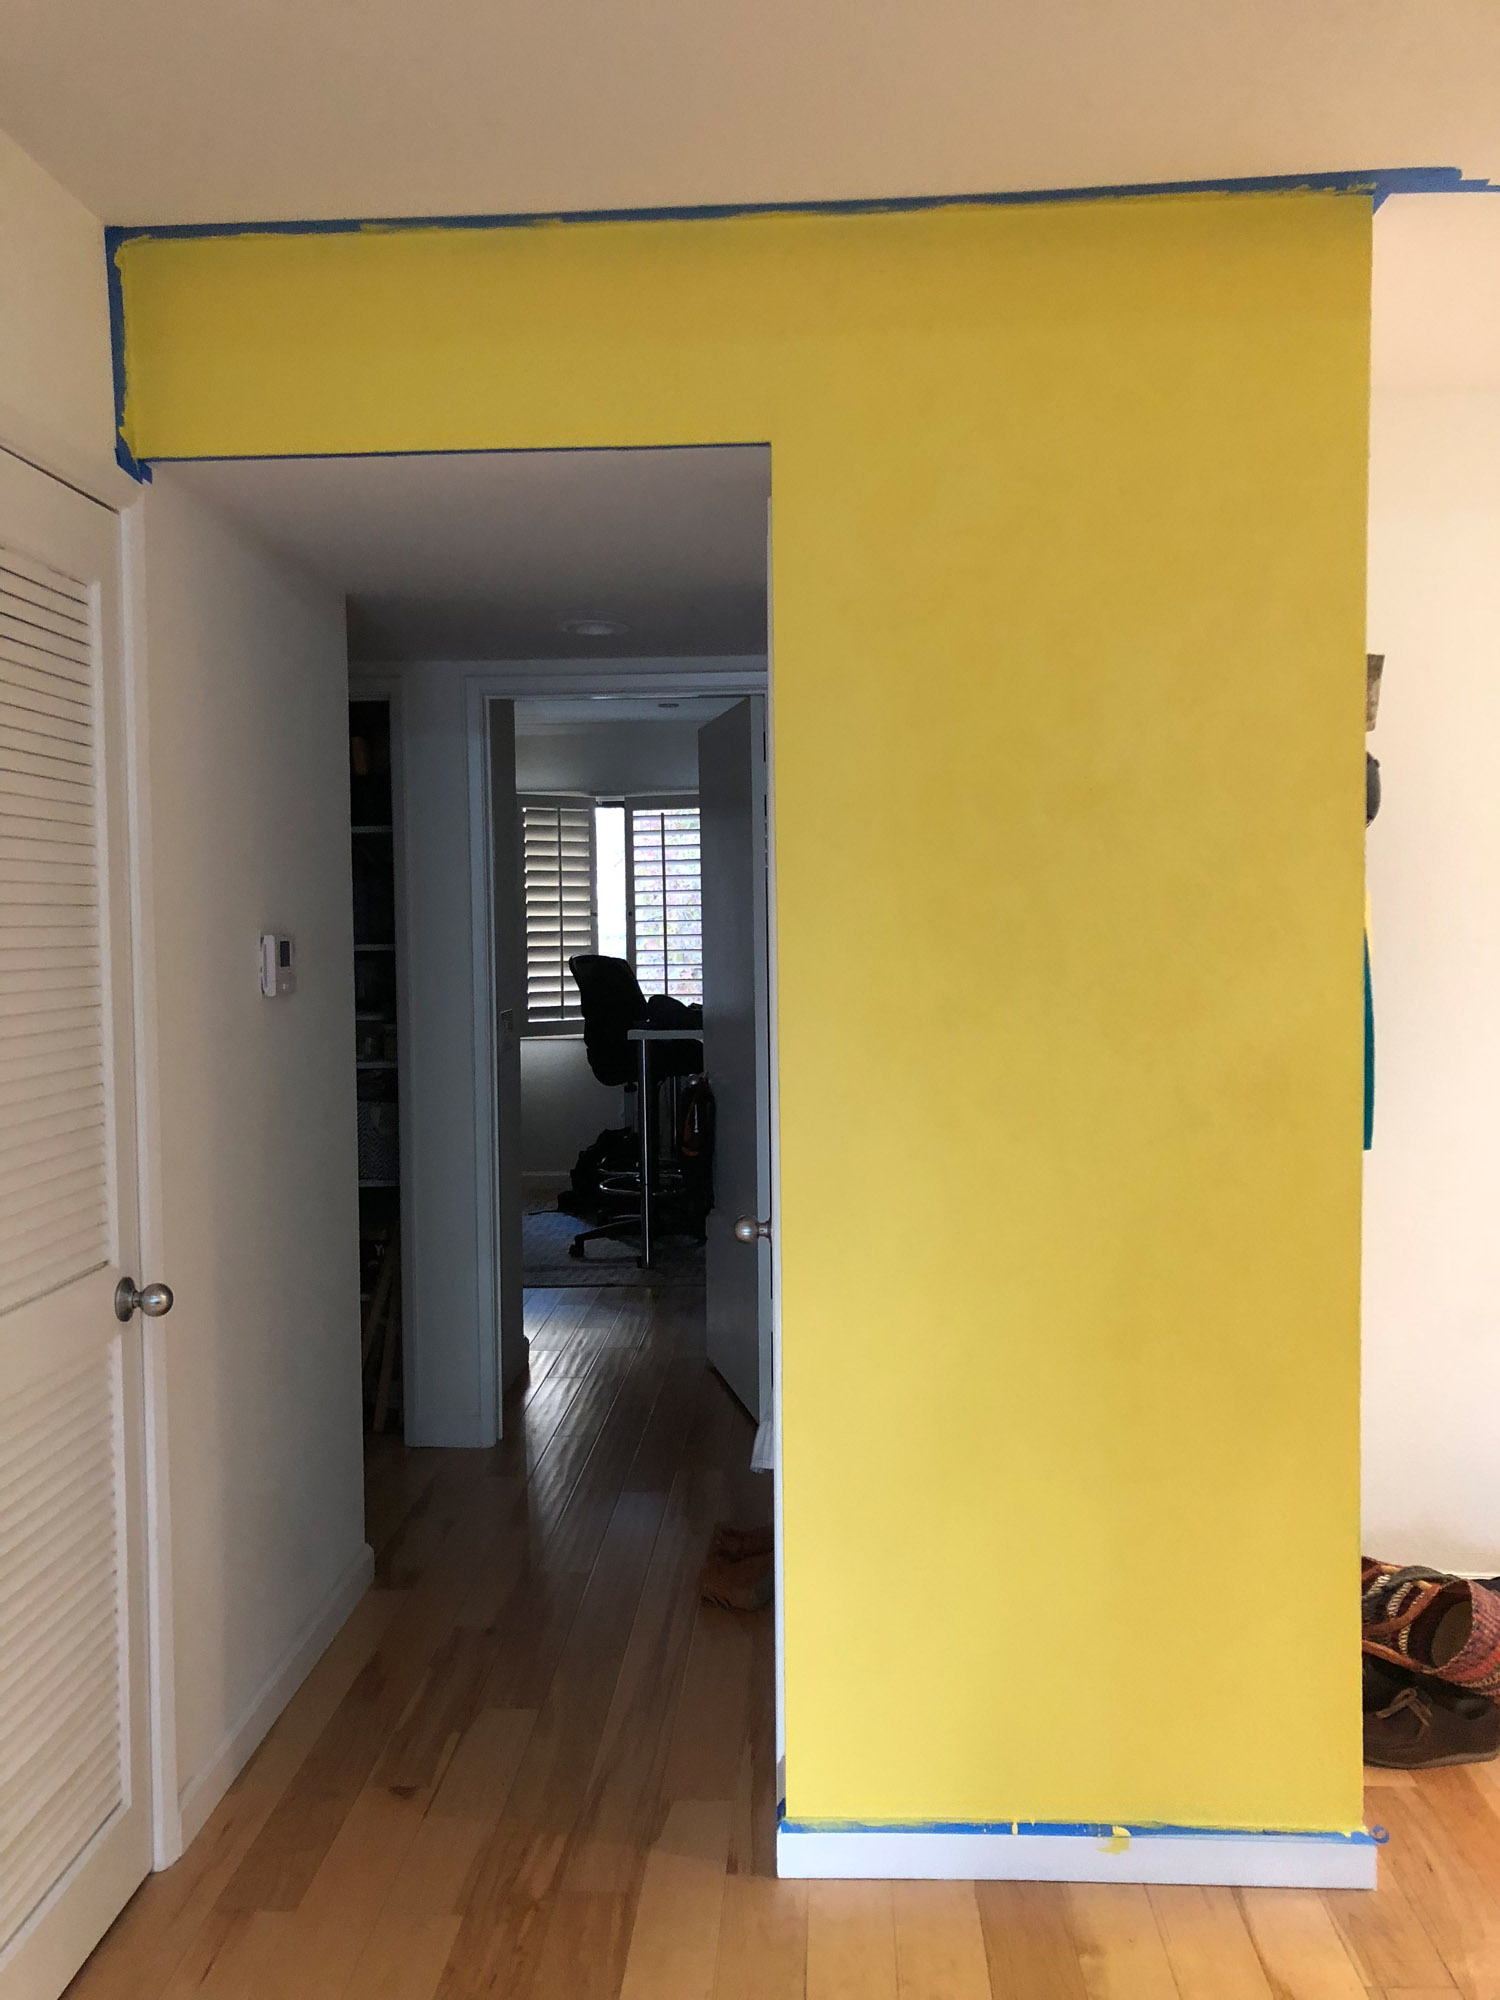 Tada! Our newly yellow entry wall